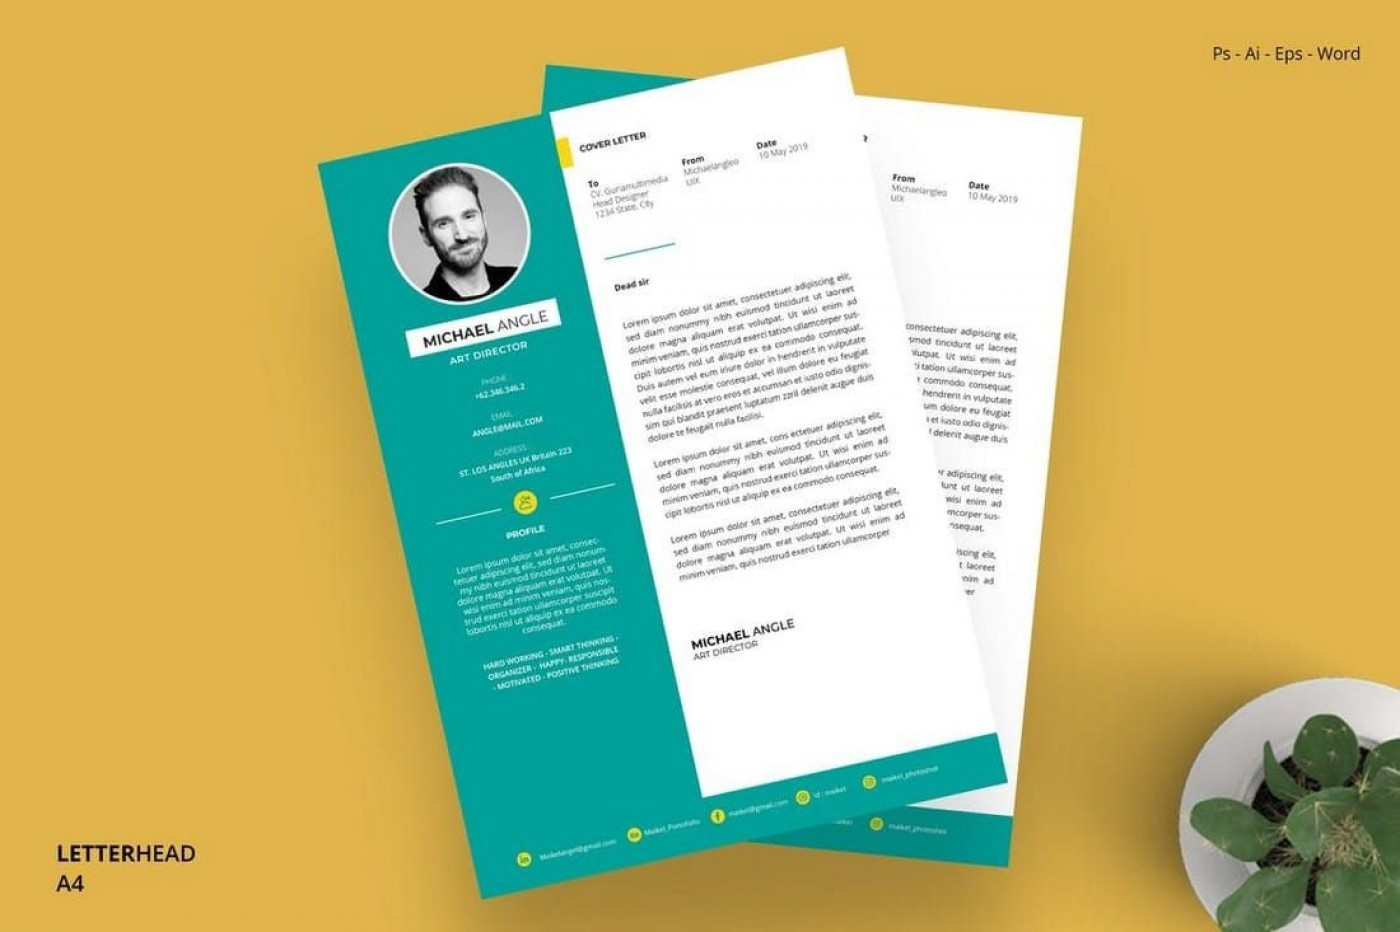 005 Marvelou Letterhead Template Free Download Ai Photo  File1400